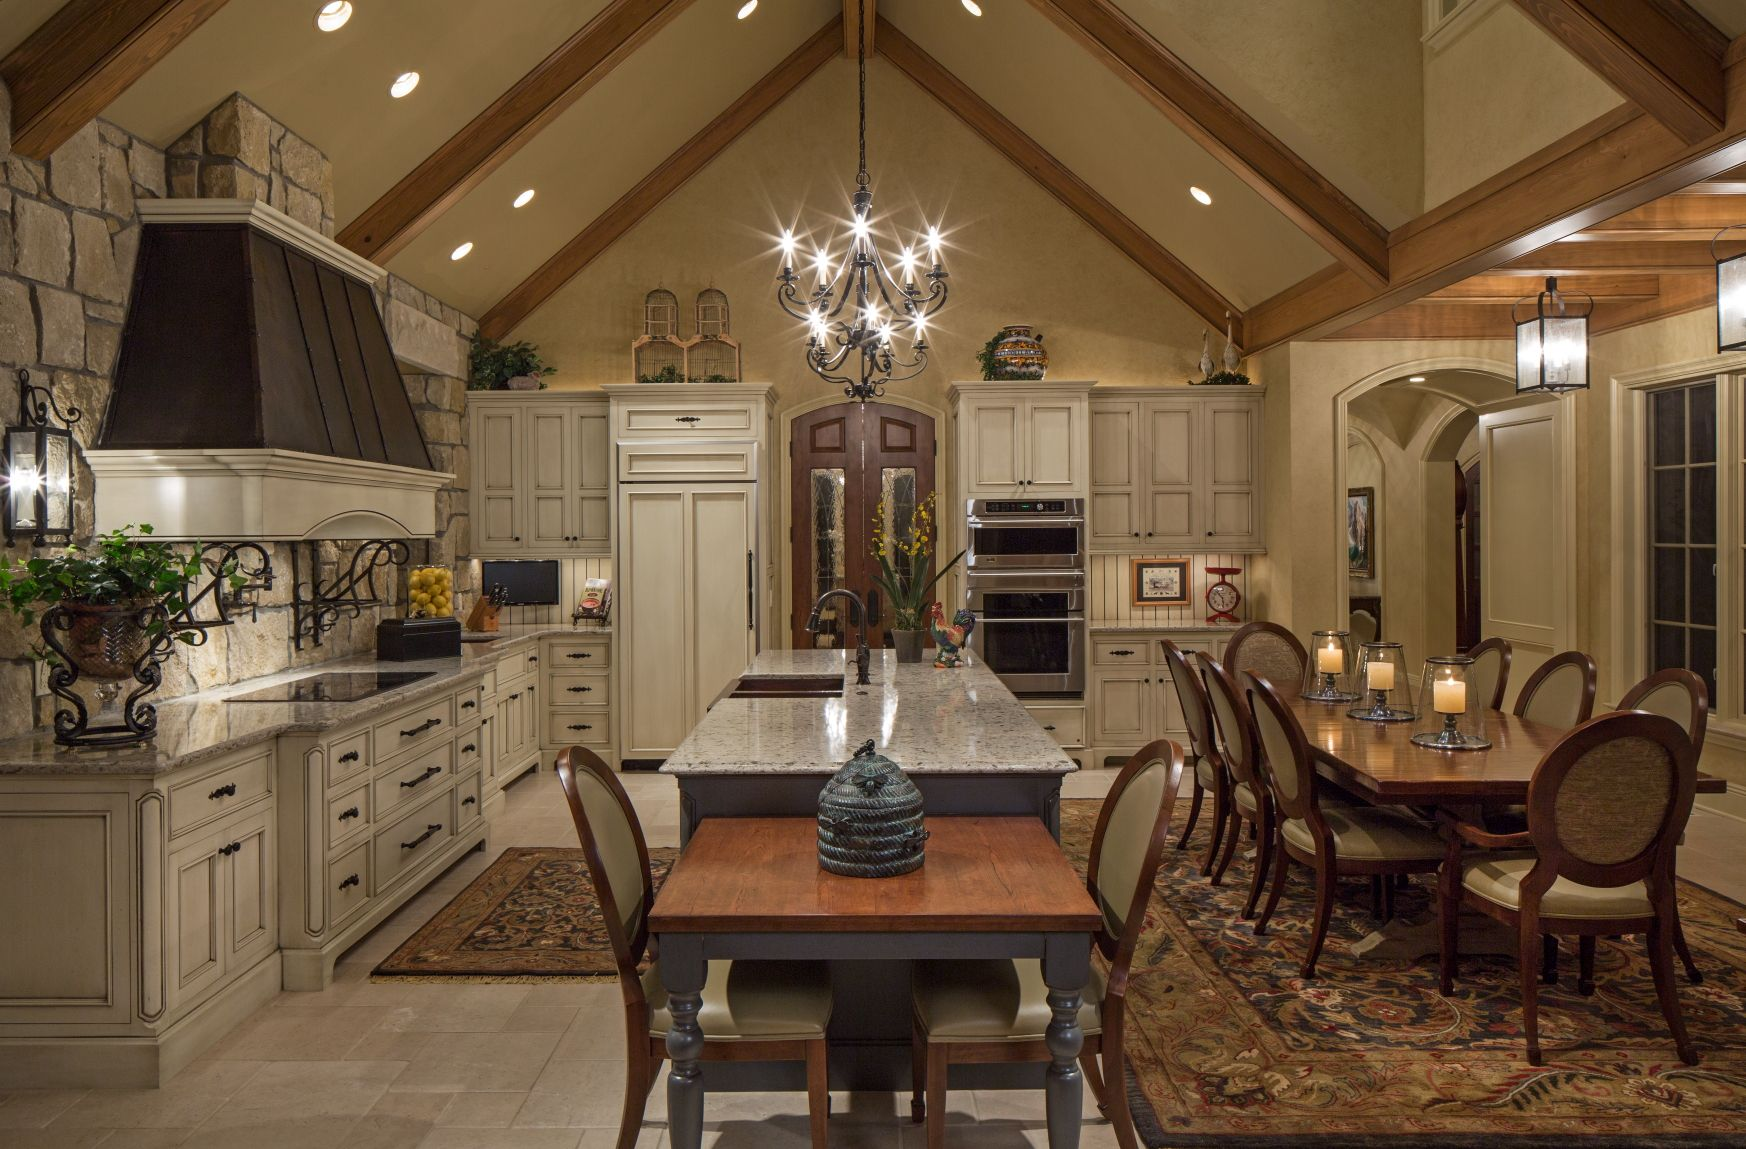 European Custom Kitchen By Curt Hofer Associates House MakeoversWood And MetalCustom KitchensDecoration